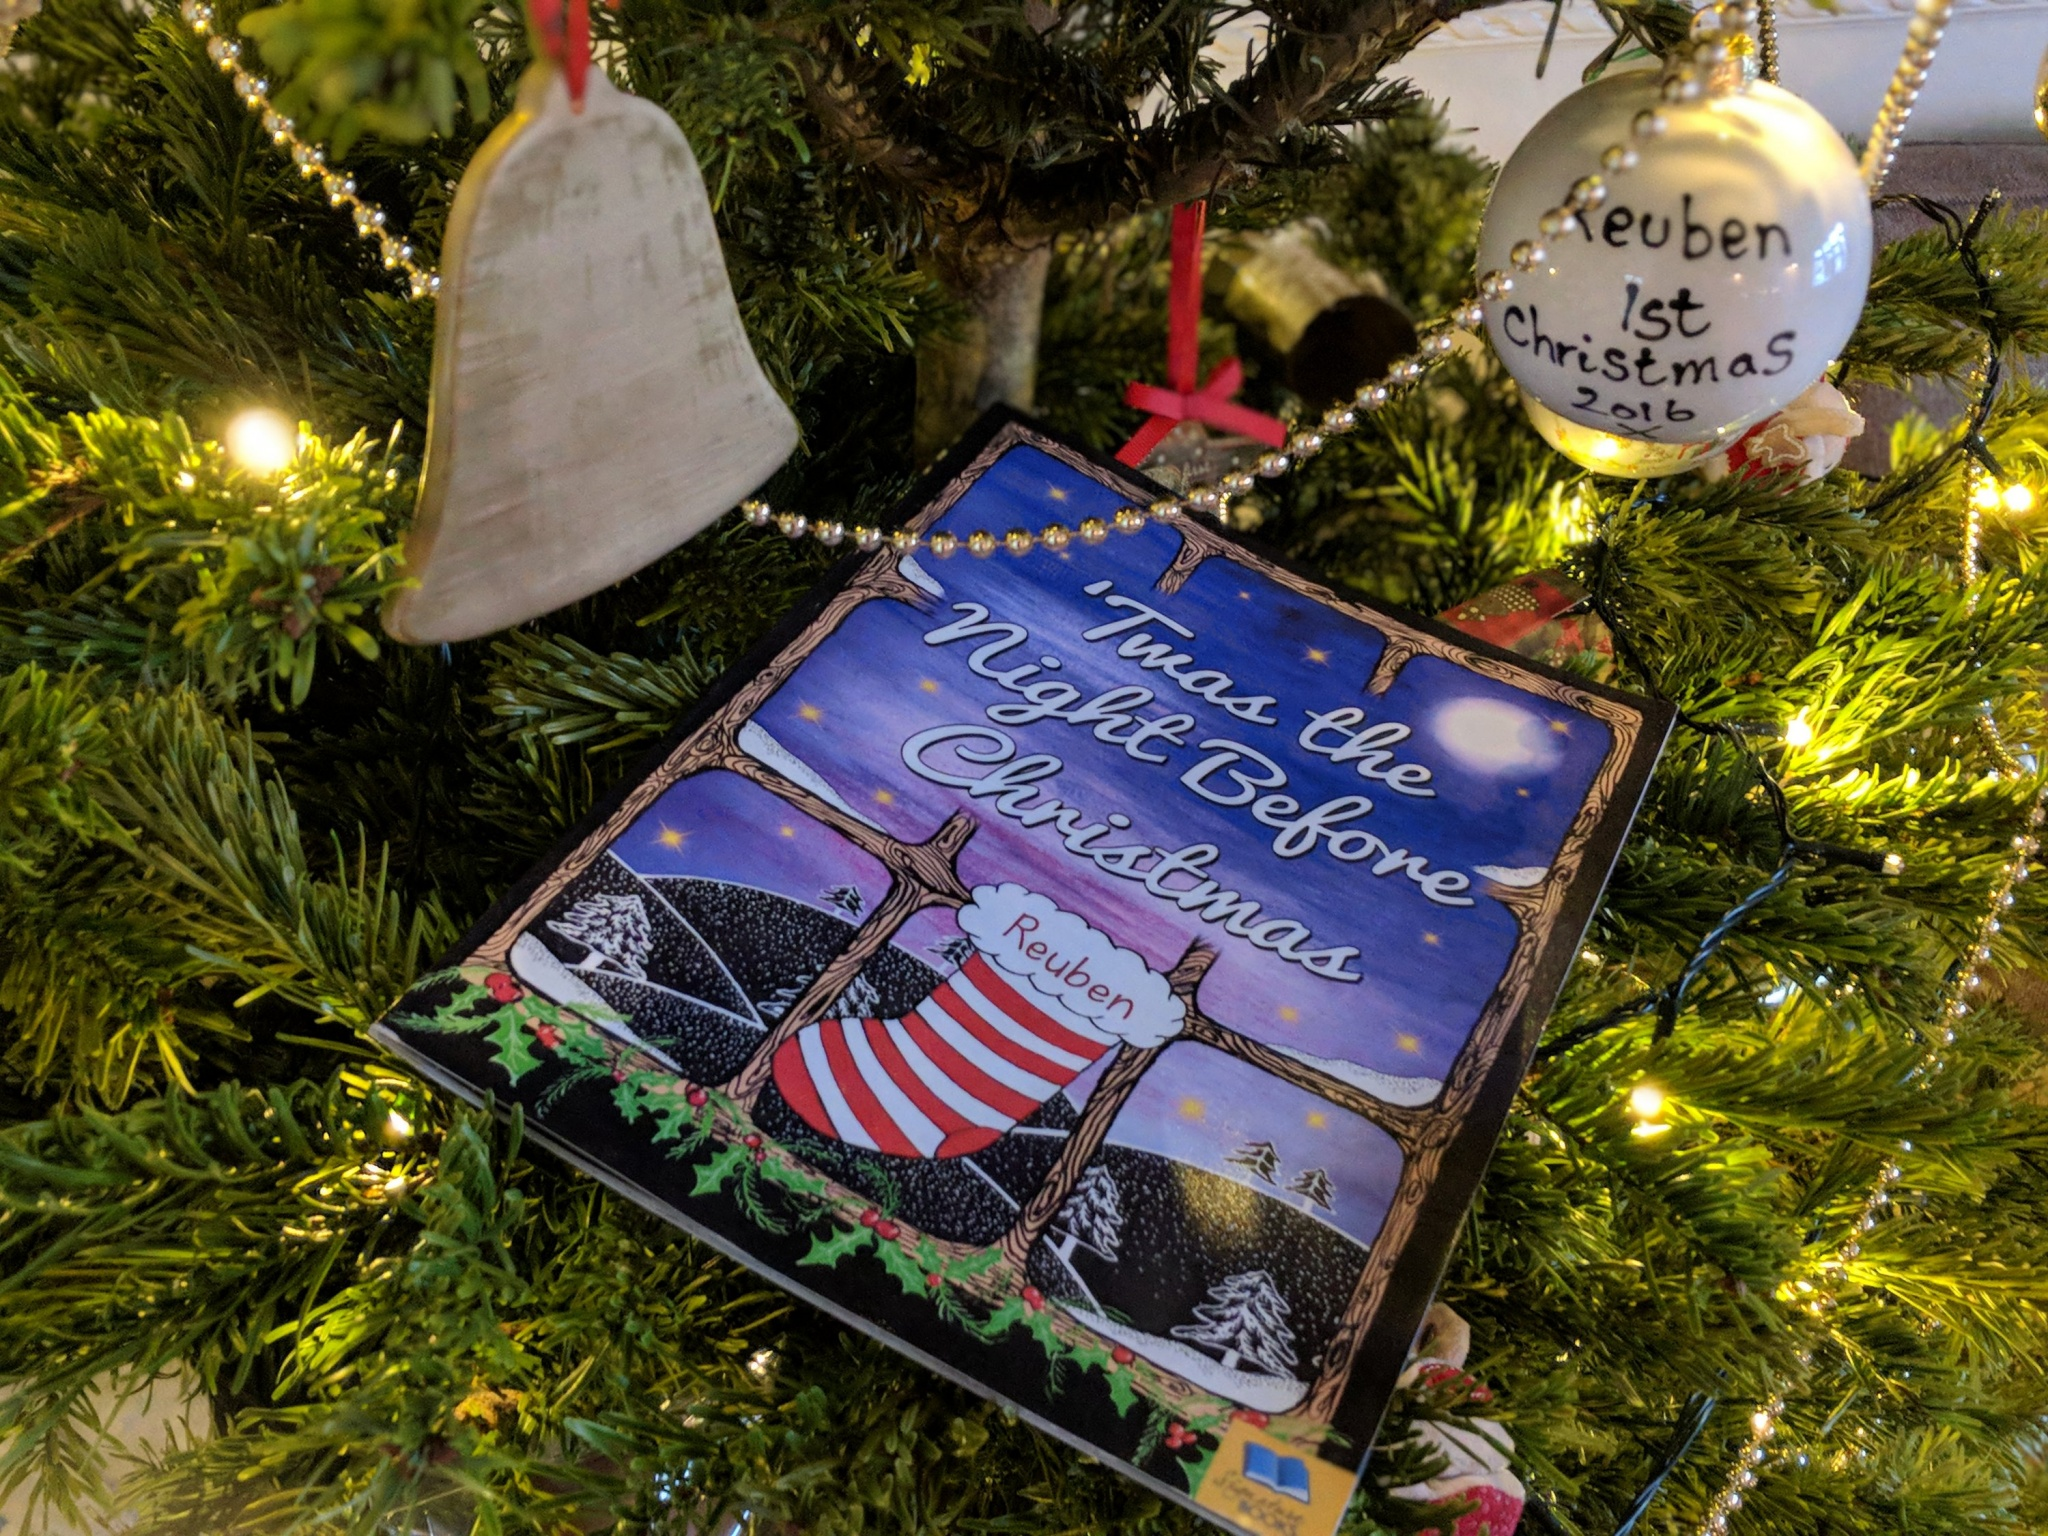 night before christmas book placed on christmas tree